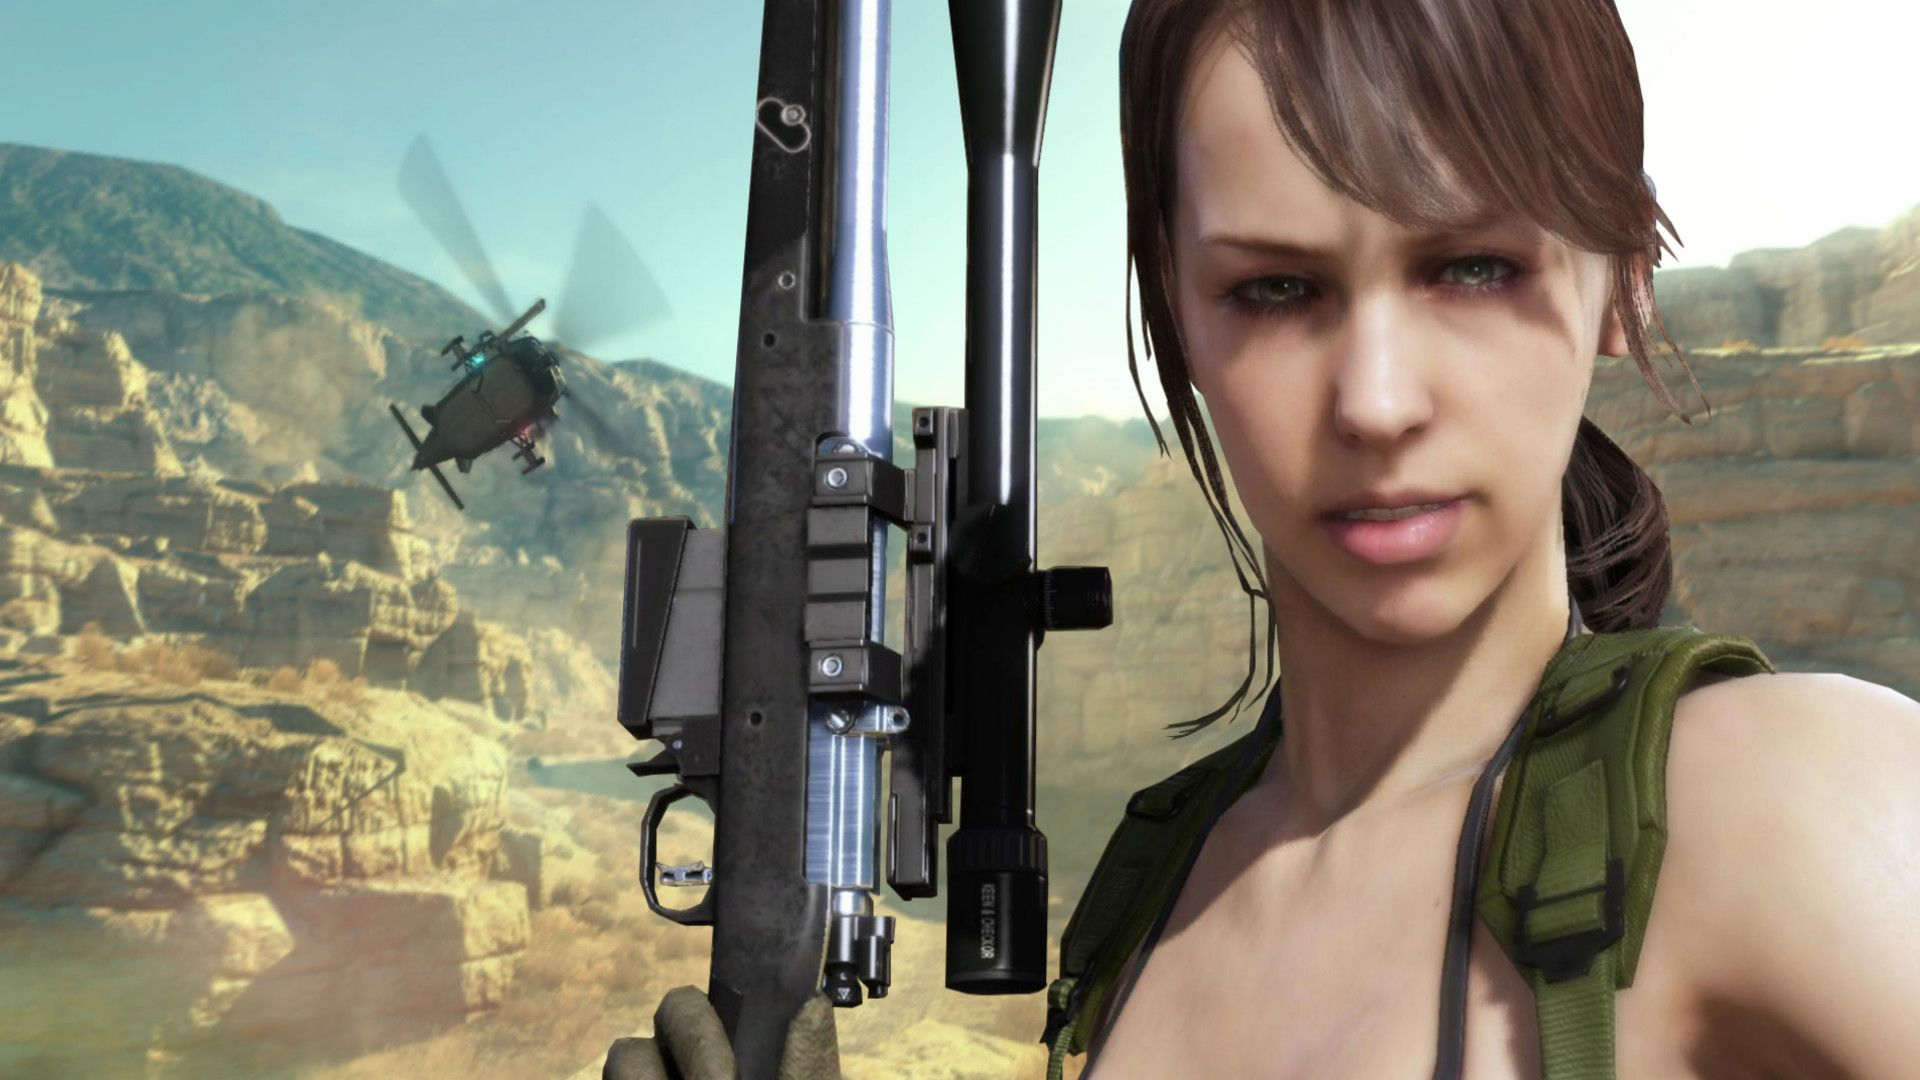 Quiet Mgs Collection See All Wallpapers Wallpapers Background Games Mgs Wallpaper Quiet Mgs Background